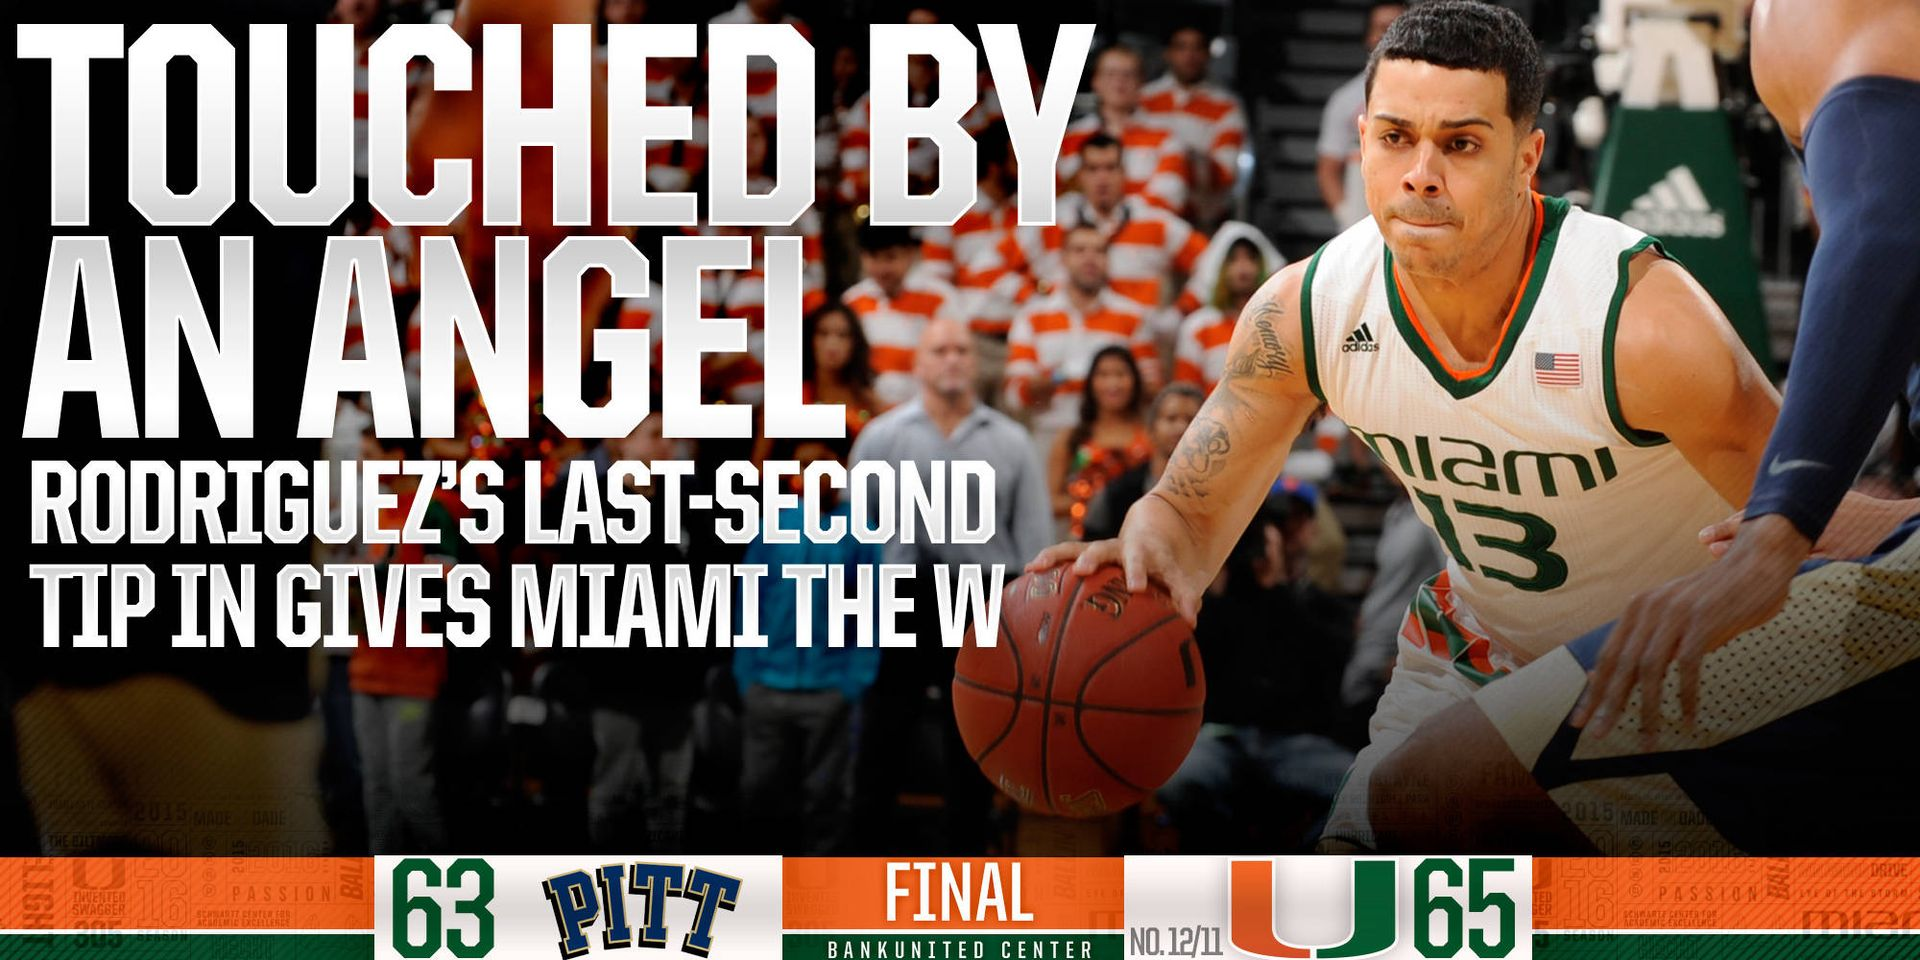 Miami Wins on Rodriguez's Last-Second Tip, 65-63